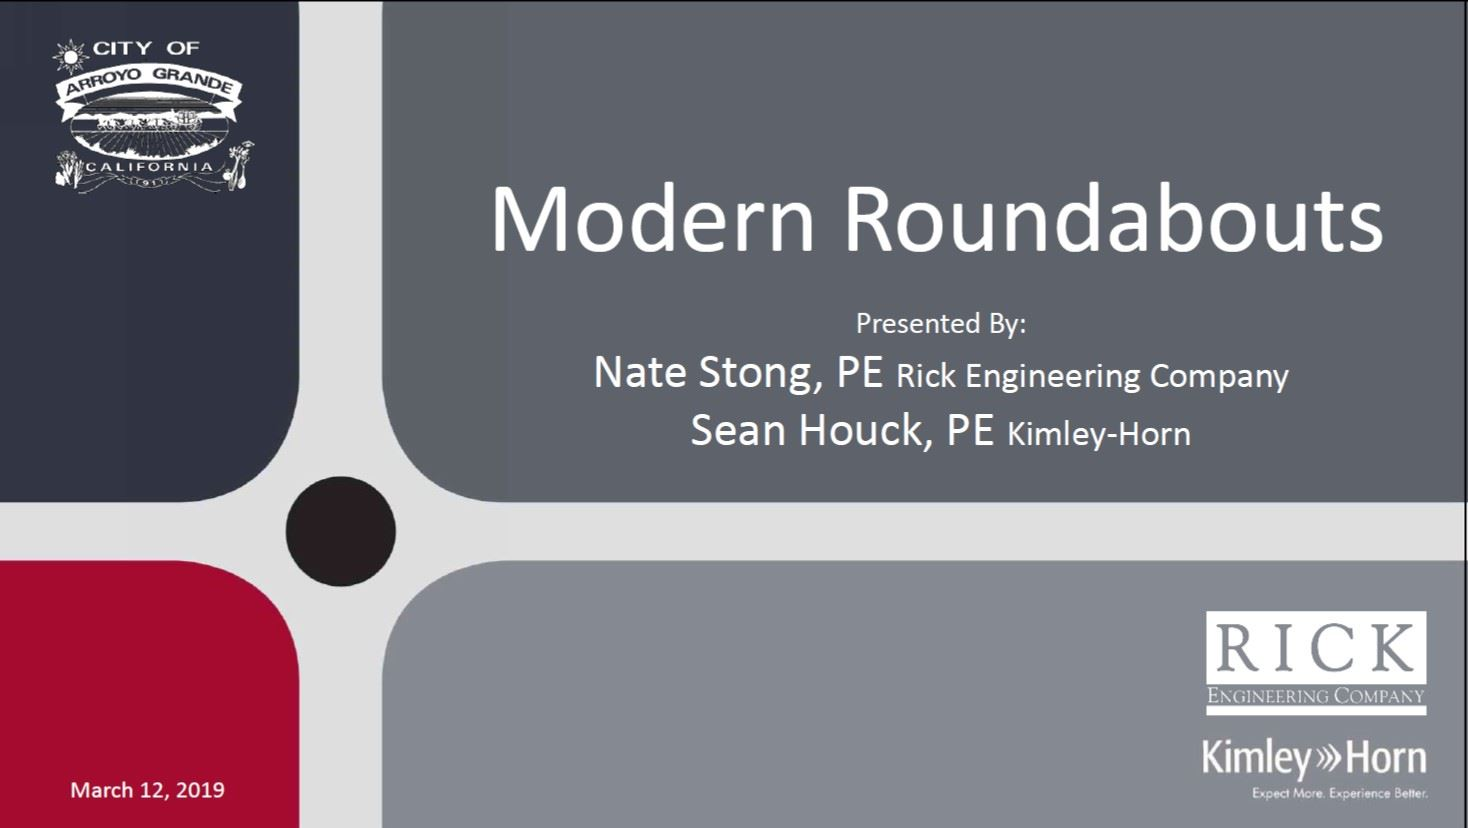 Modern Roundabout PowerPoint 3/12/2019